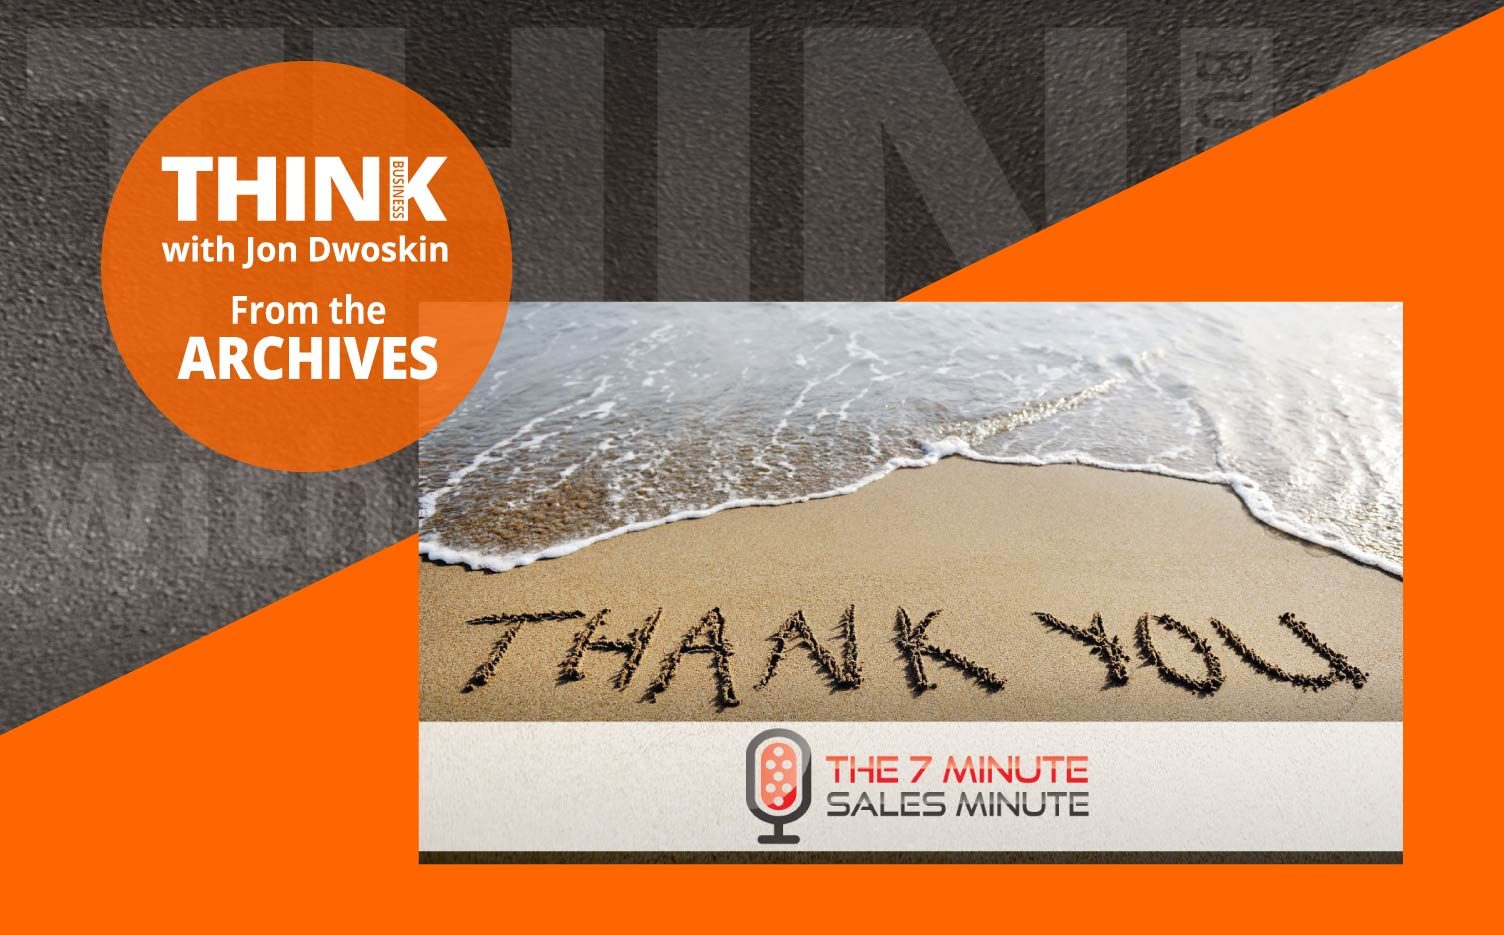 THINK Business Podcast: Don't Forget to Share Your Gratitude